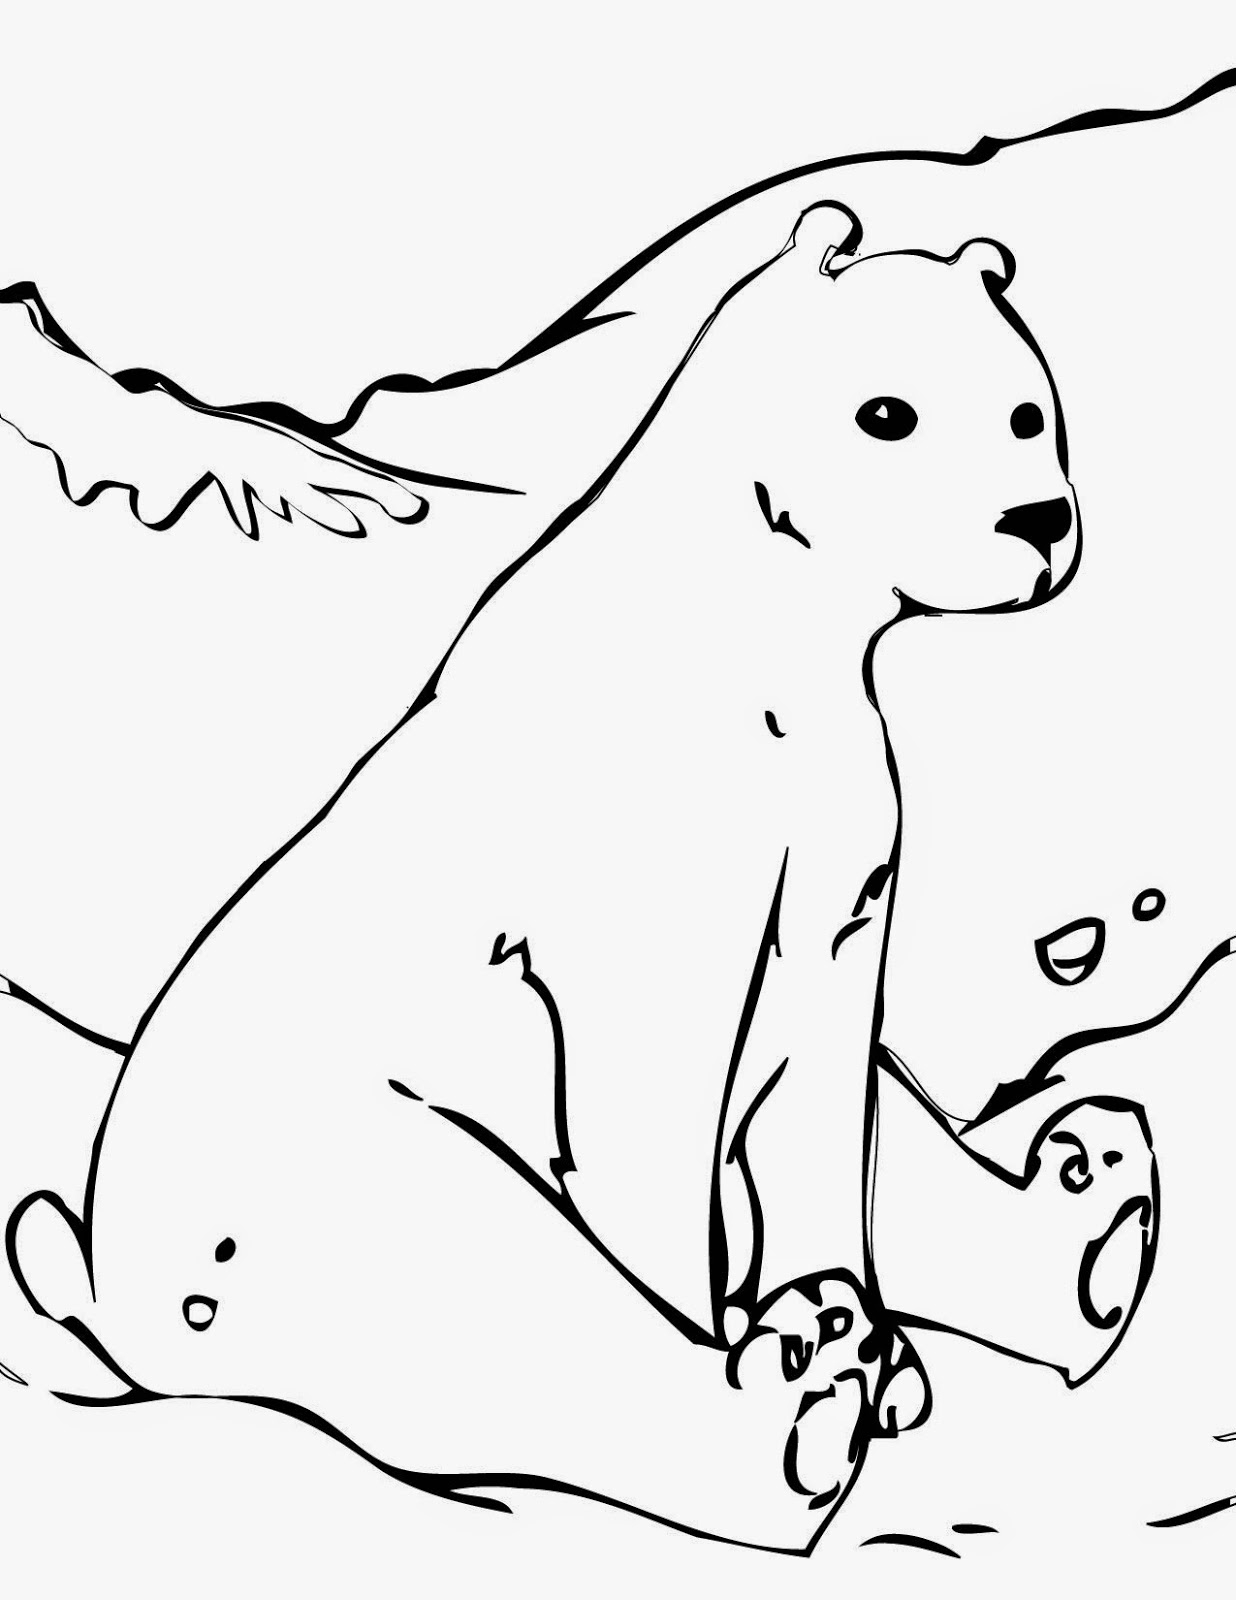 Yogi Bear Coloring Page Coloring Pages Bear Free Printable Coloring Pages And Clip Art